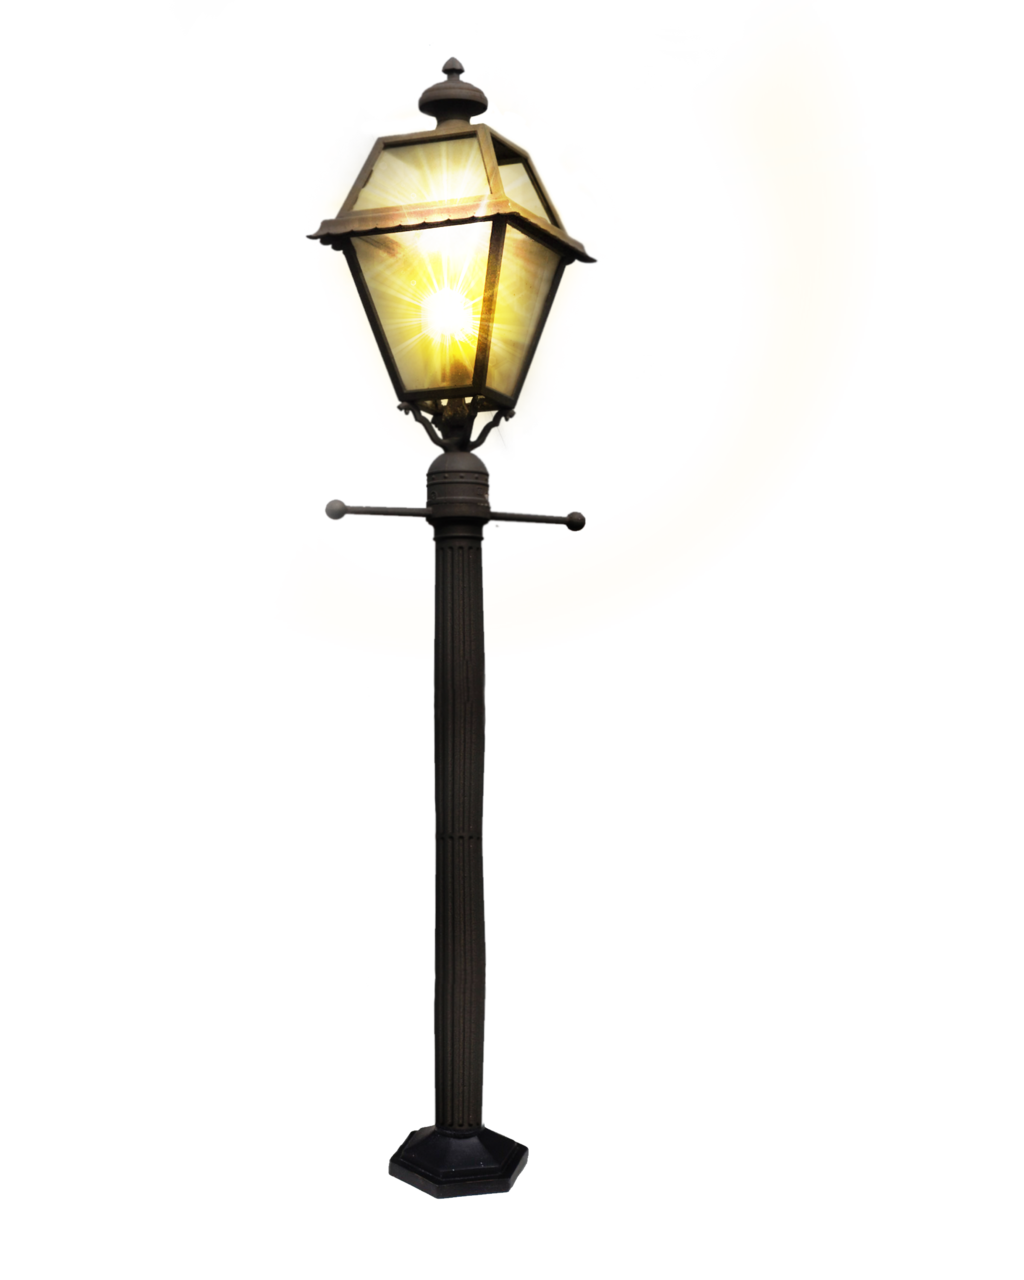 Download Street Light Clipart HQ PNG Image | FreePNGImg for Street Lamp Clipart Png  58cpg